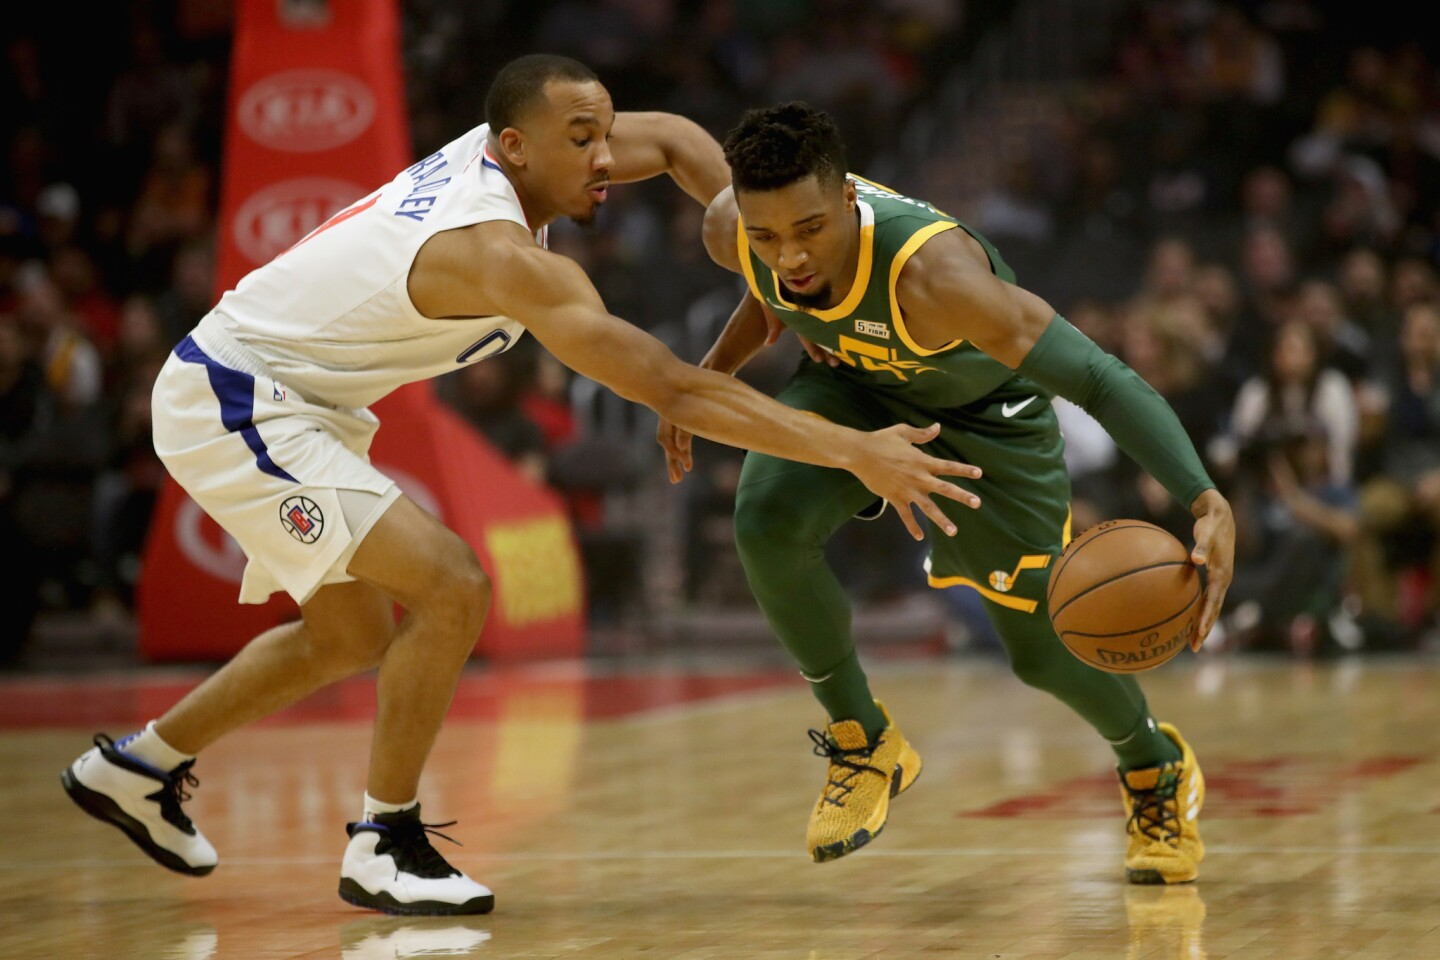 LOS ANGELES, CA - JANUARY 16: Avery Bradley #11 of the Los Angeles Clippers defends agains the dribble of Donovan Mitchell #45 of the Utah Jazz during the first half of a game at Staples Center on January 16, 2019 in Los Angeles, California. NOTE TO USER: User expressly acknowledges and agrees that, by downloading and or using this photograph, User is consenting to the terms and conditions of the Getty Images License Agreement. (Photo by Sean M. Haffey/Getty Images) ** OUTS - ELSENT, FPG, CM - OUTS * NM, PH, VA if sourced by CT, LA or MoD **